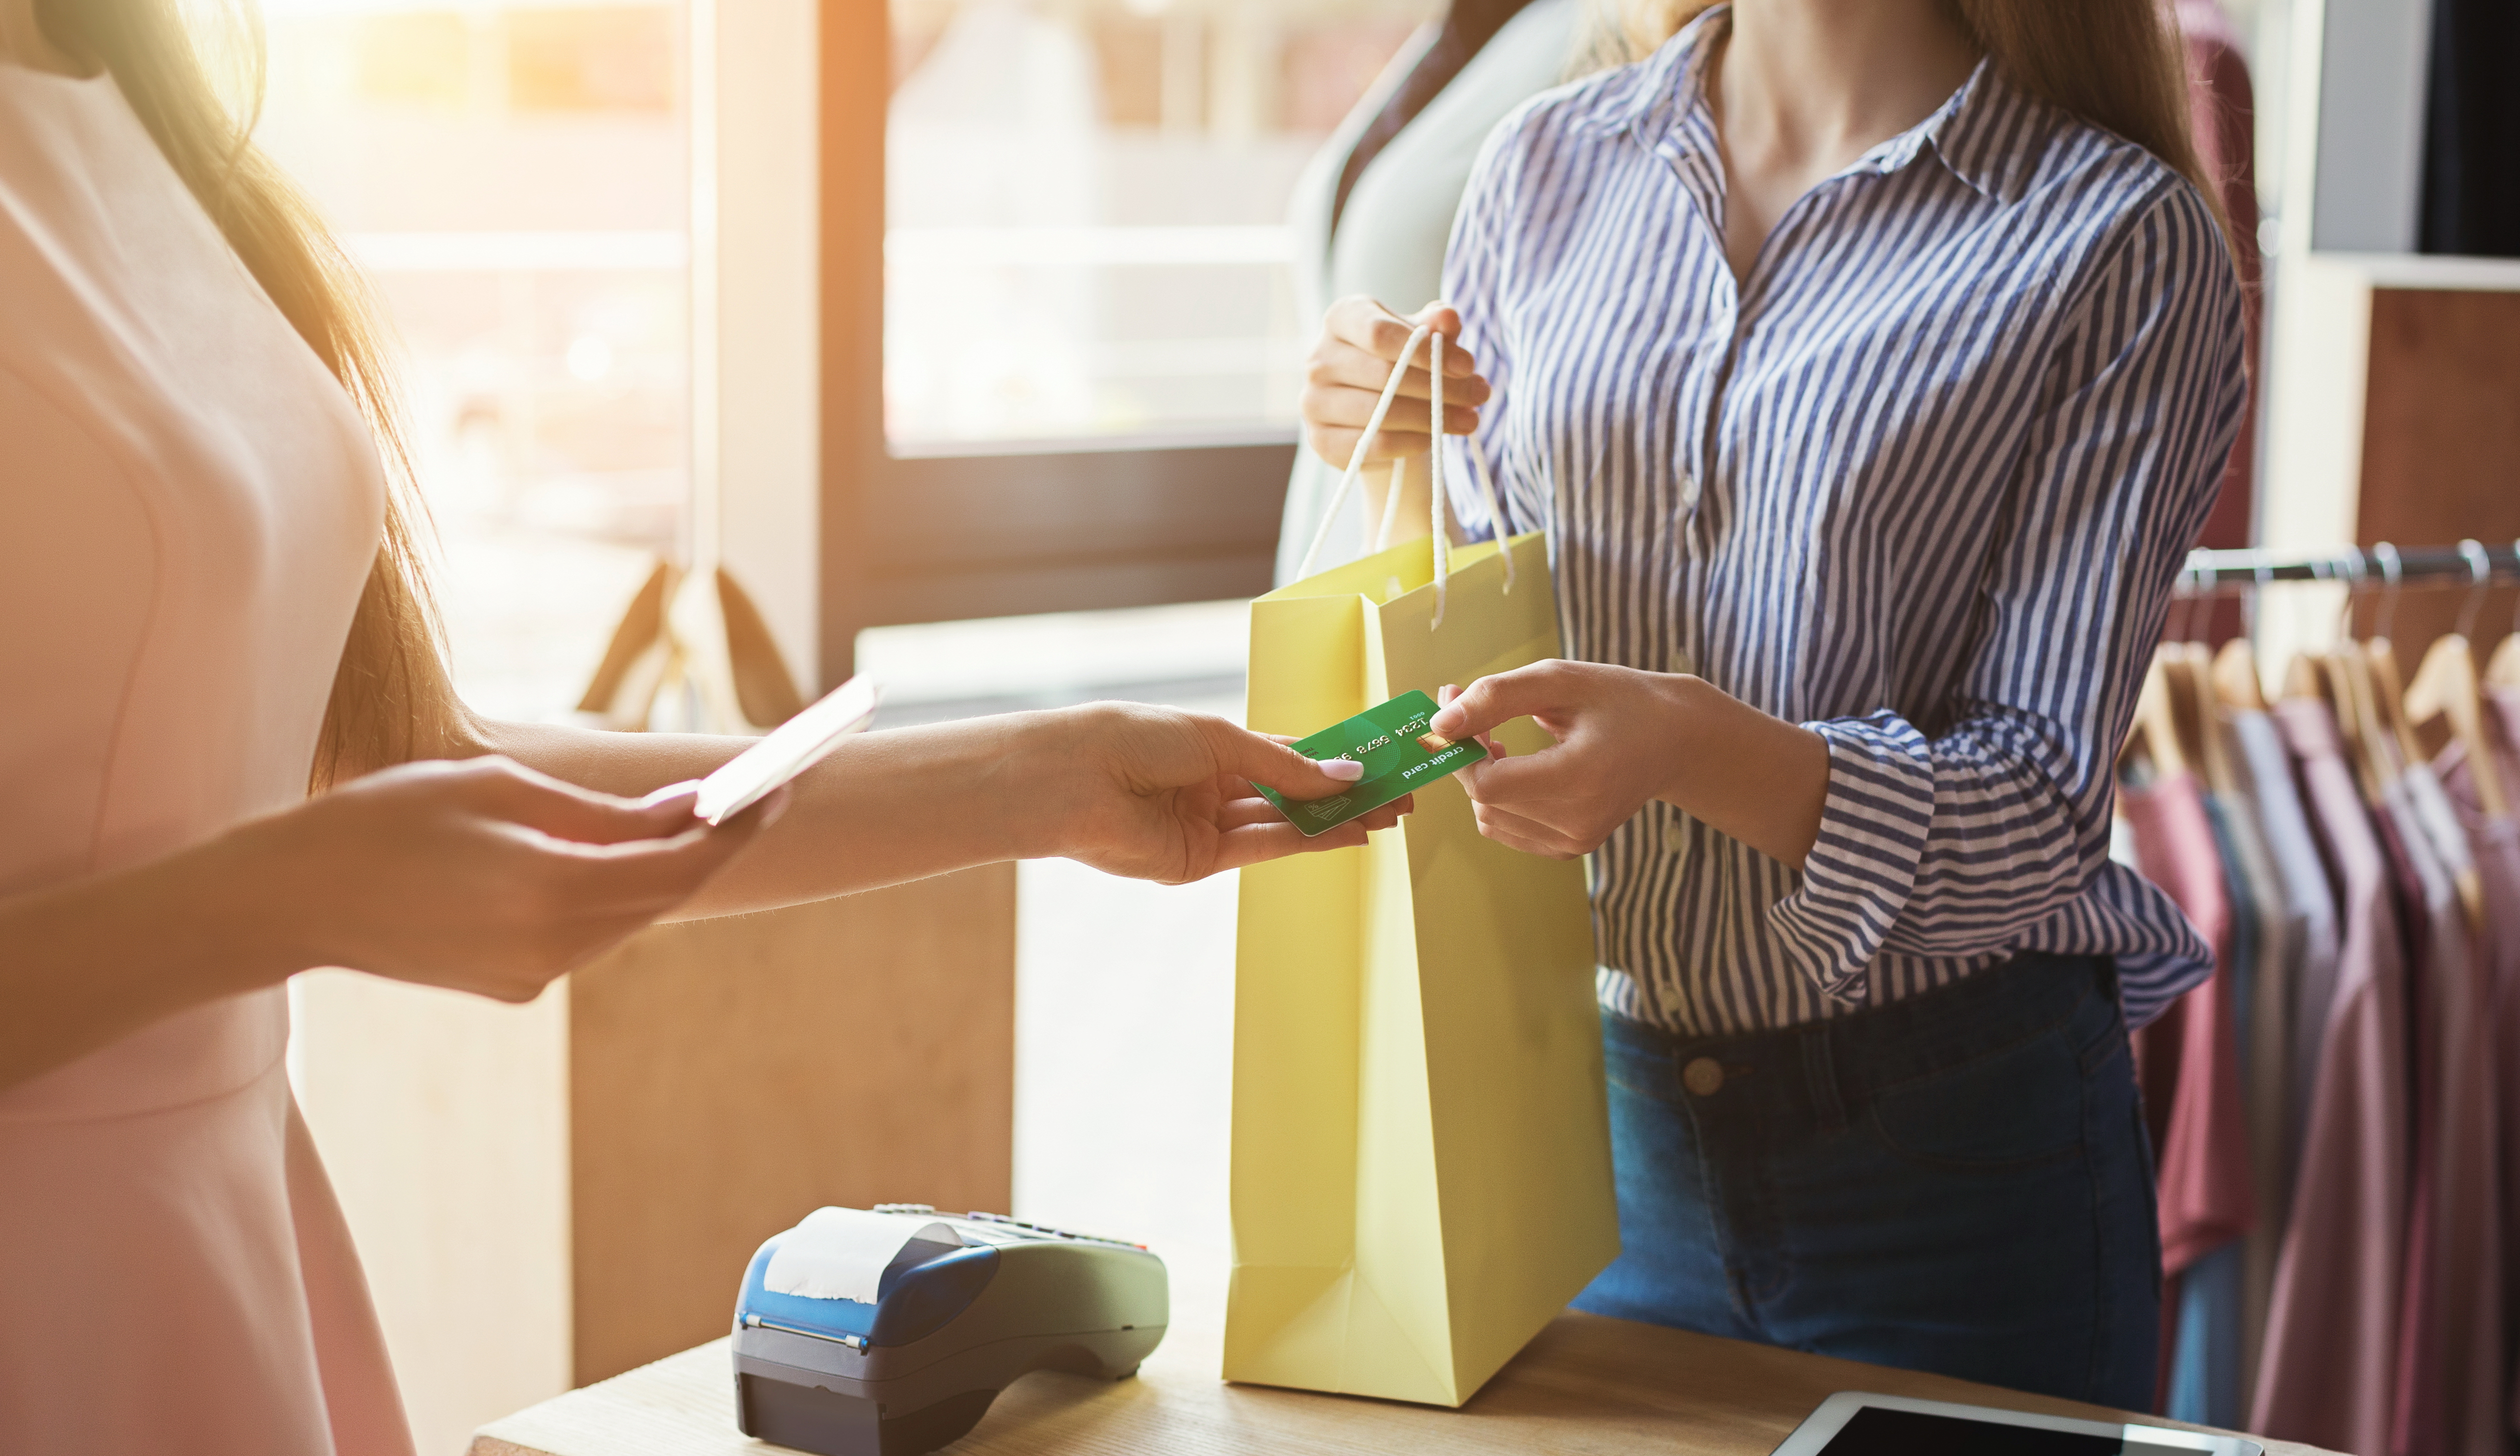 This US-based Retailer Integrated Web-based POS and Inventory Technologies for their Physical Stores